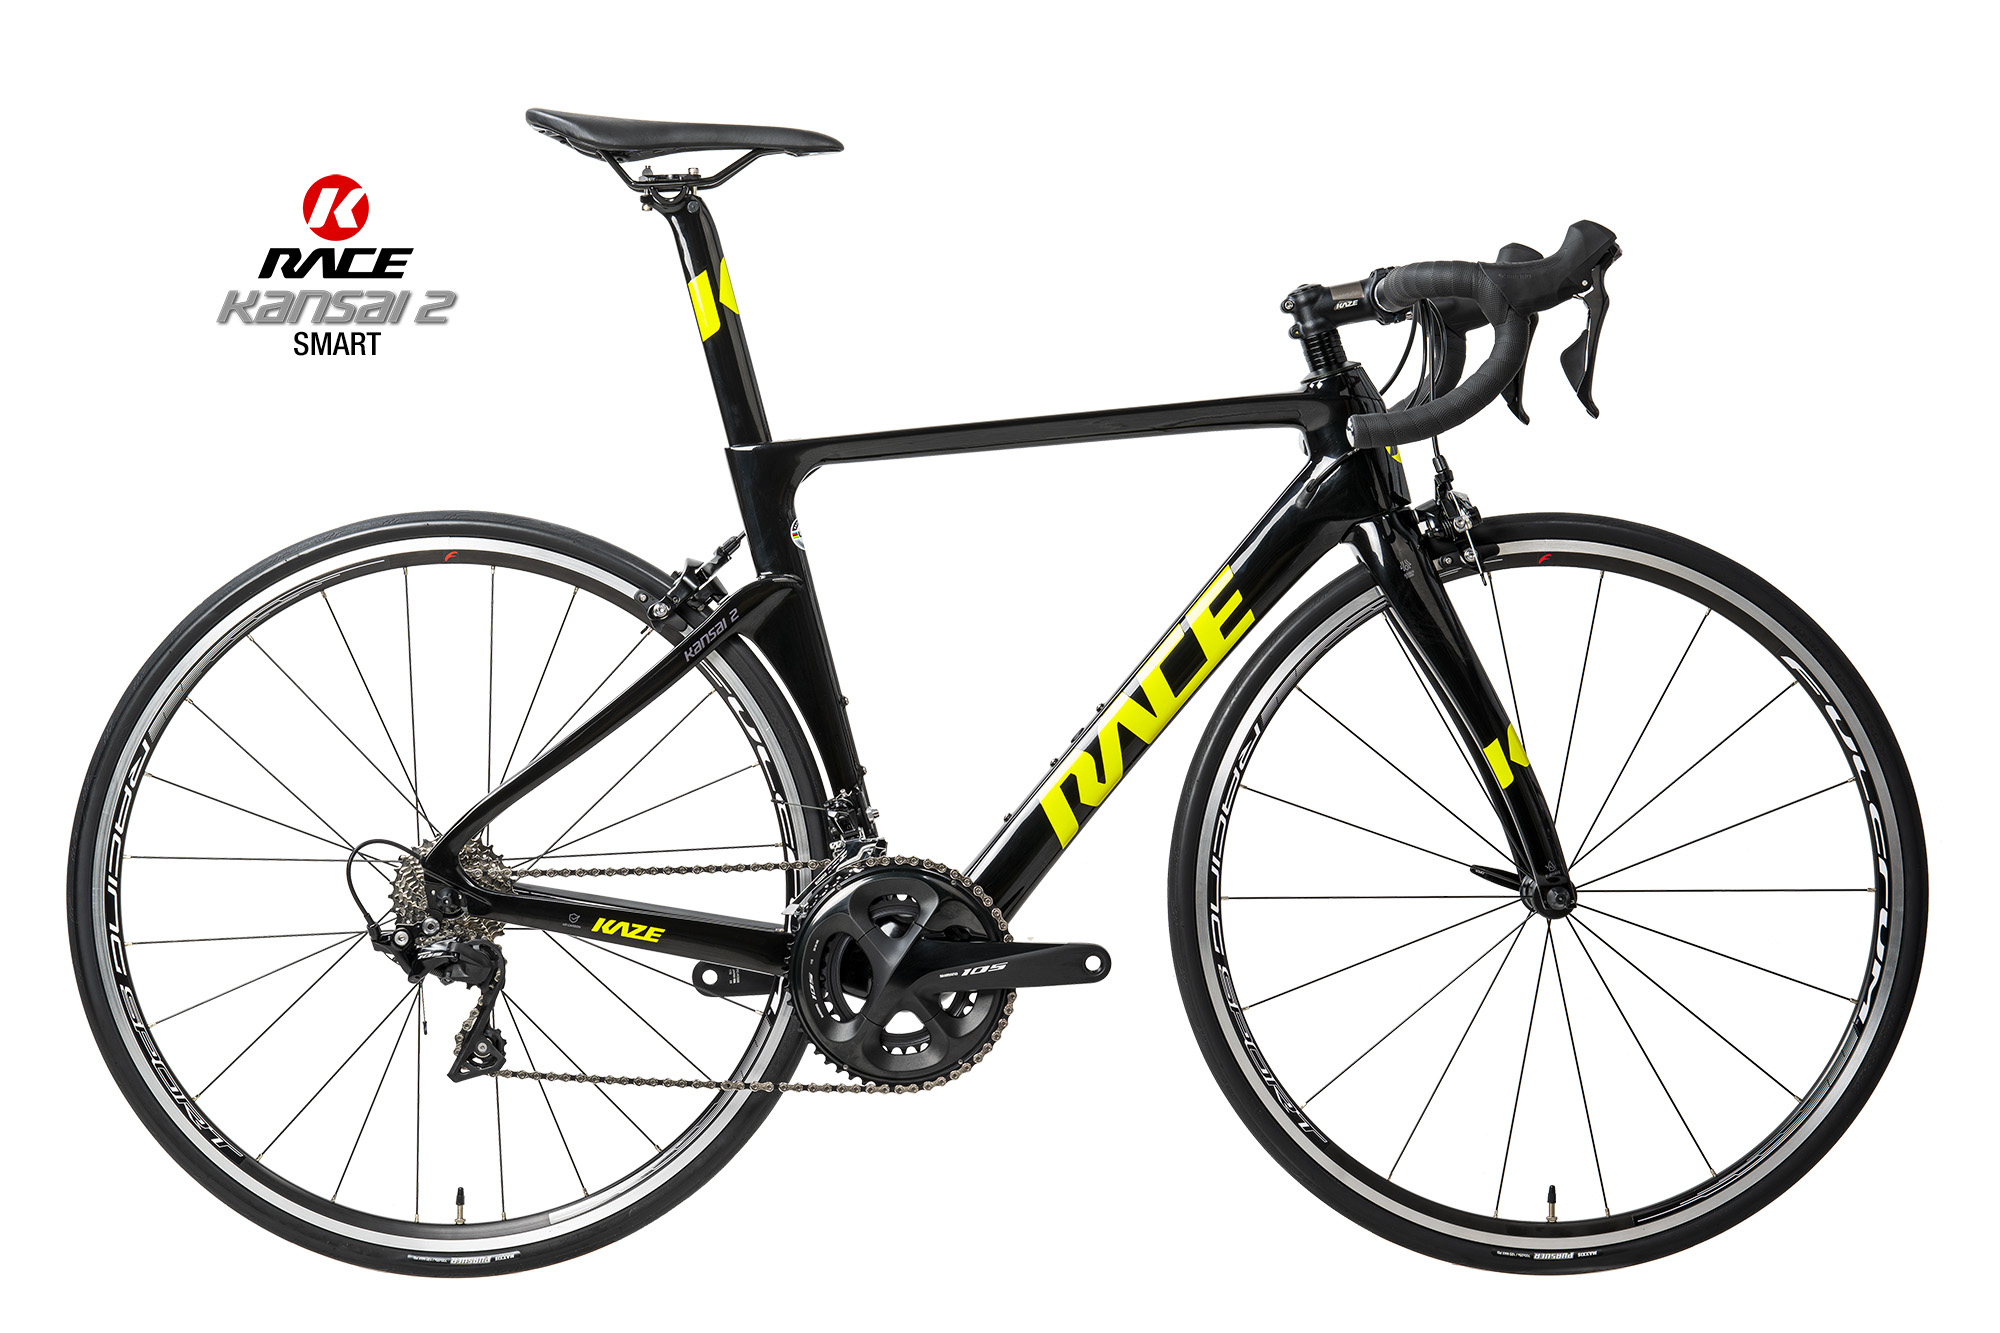 KAZE RACE | KANSAI 2  (Smart) Shimano 105 Fulcrum Alu Wheel